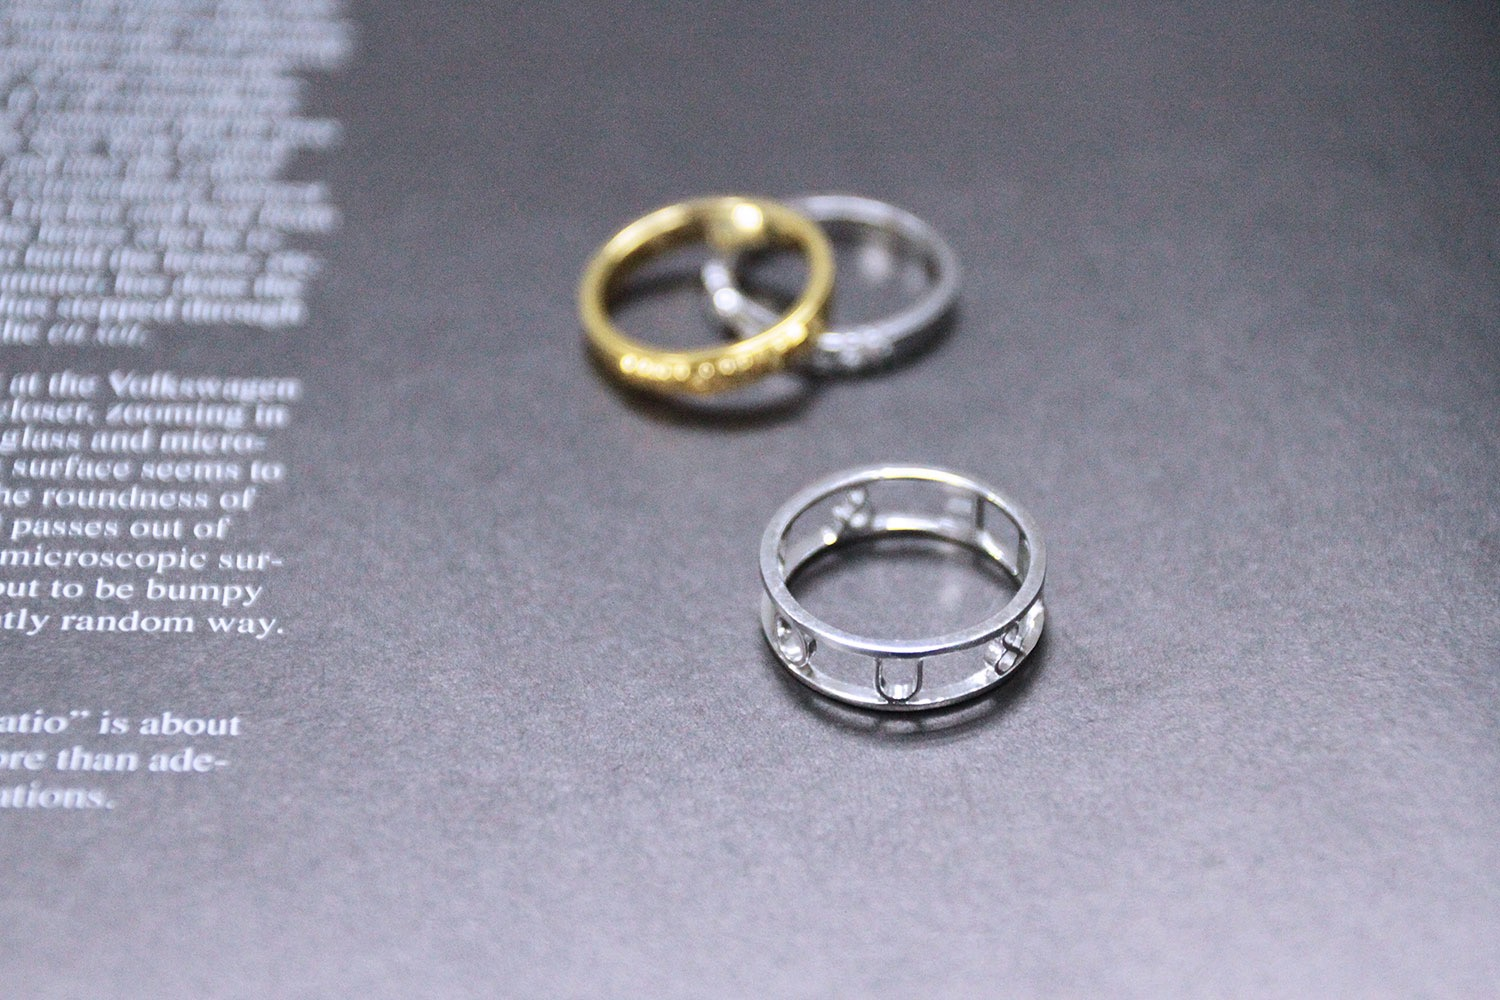 Customize your own sliver rings by Myjewelry cc | Desktop DLP 3D